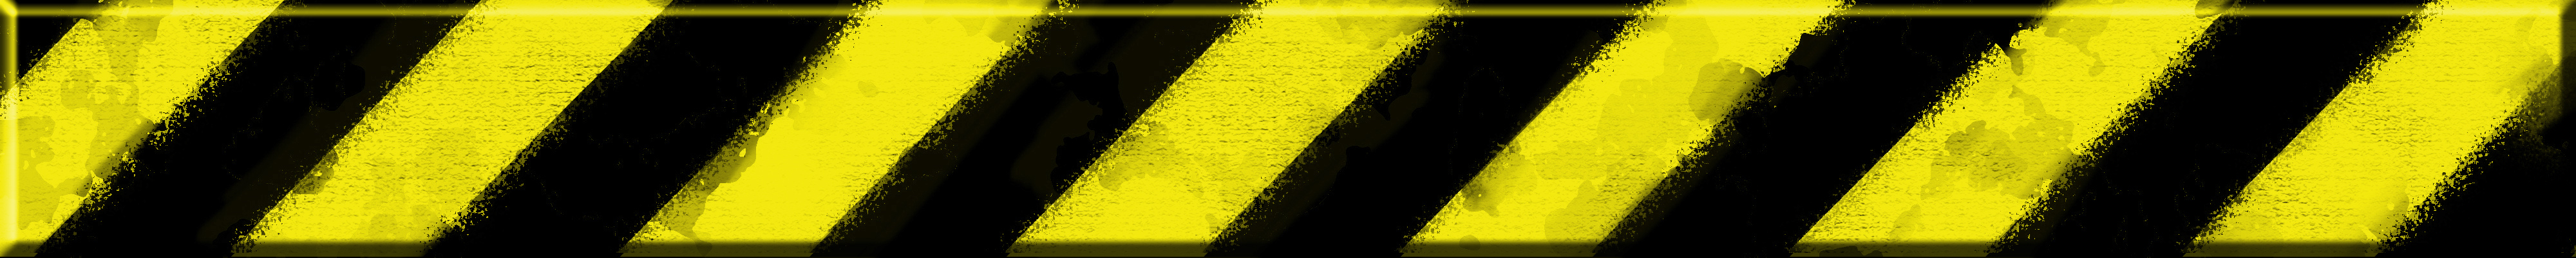 tplimg:blackrabbit:yellow-black-baustelle_embossed_bar.jpg